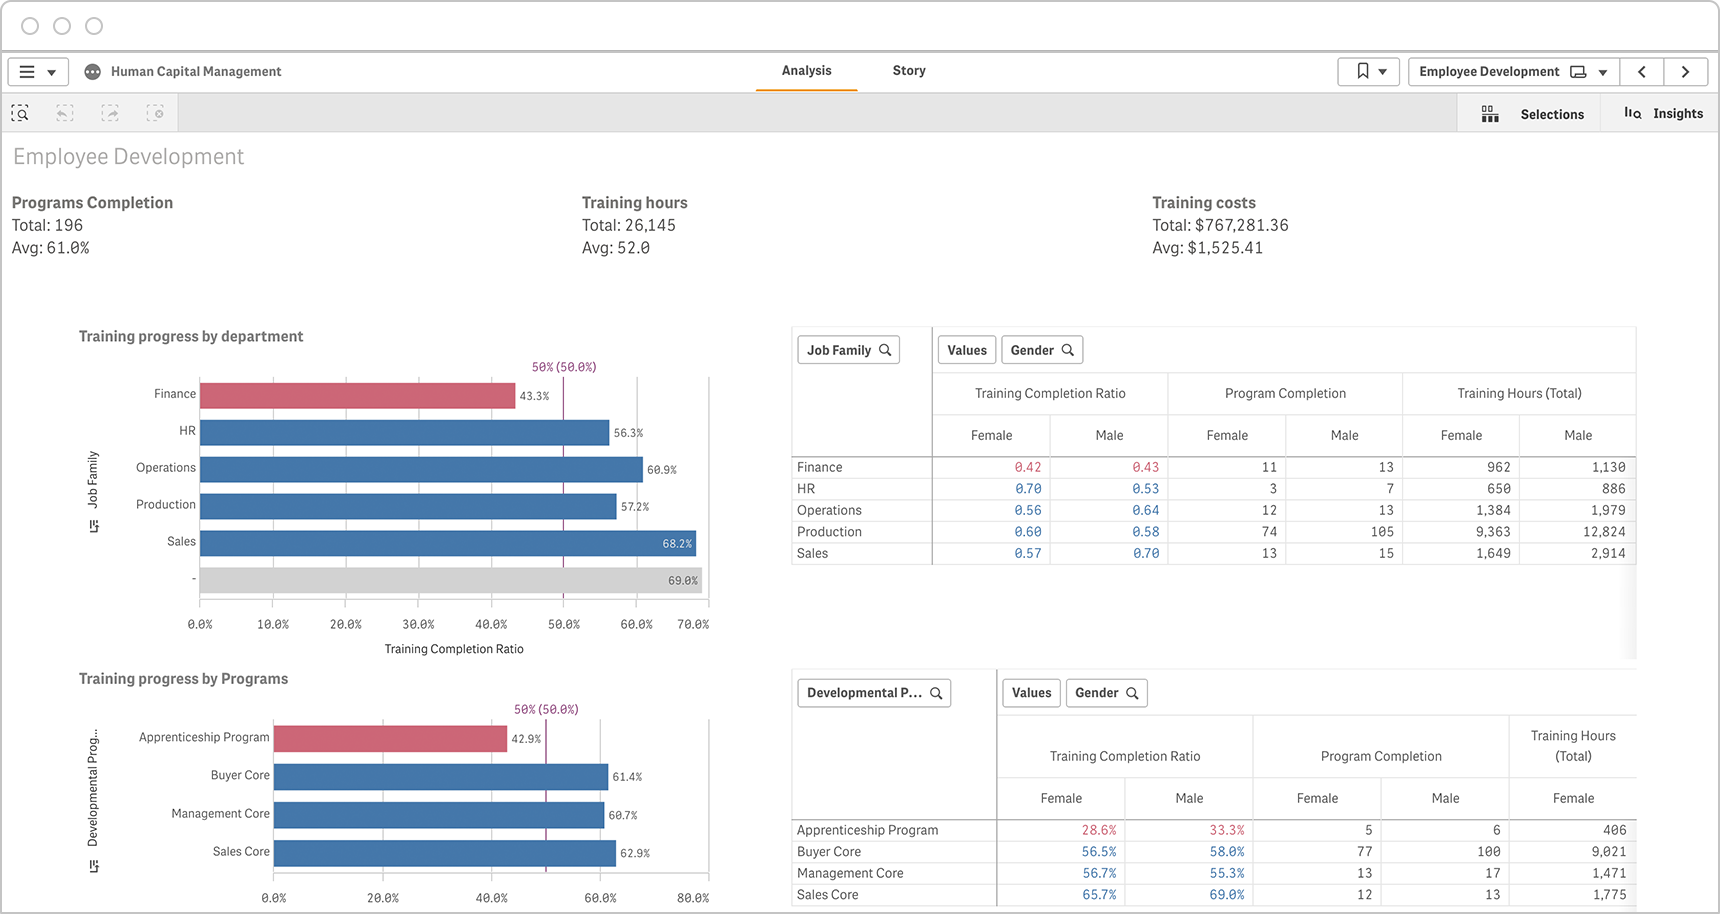 An interactive employee development HR dashboard allows the user to break out data by dimensions like department, program, gender and more.